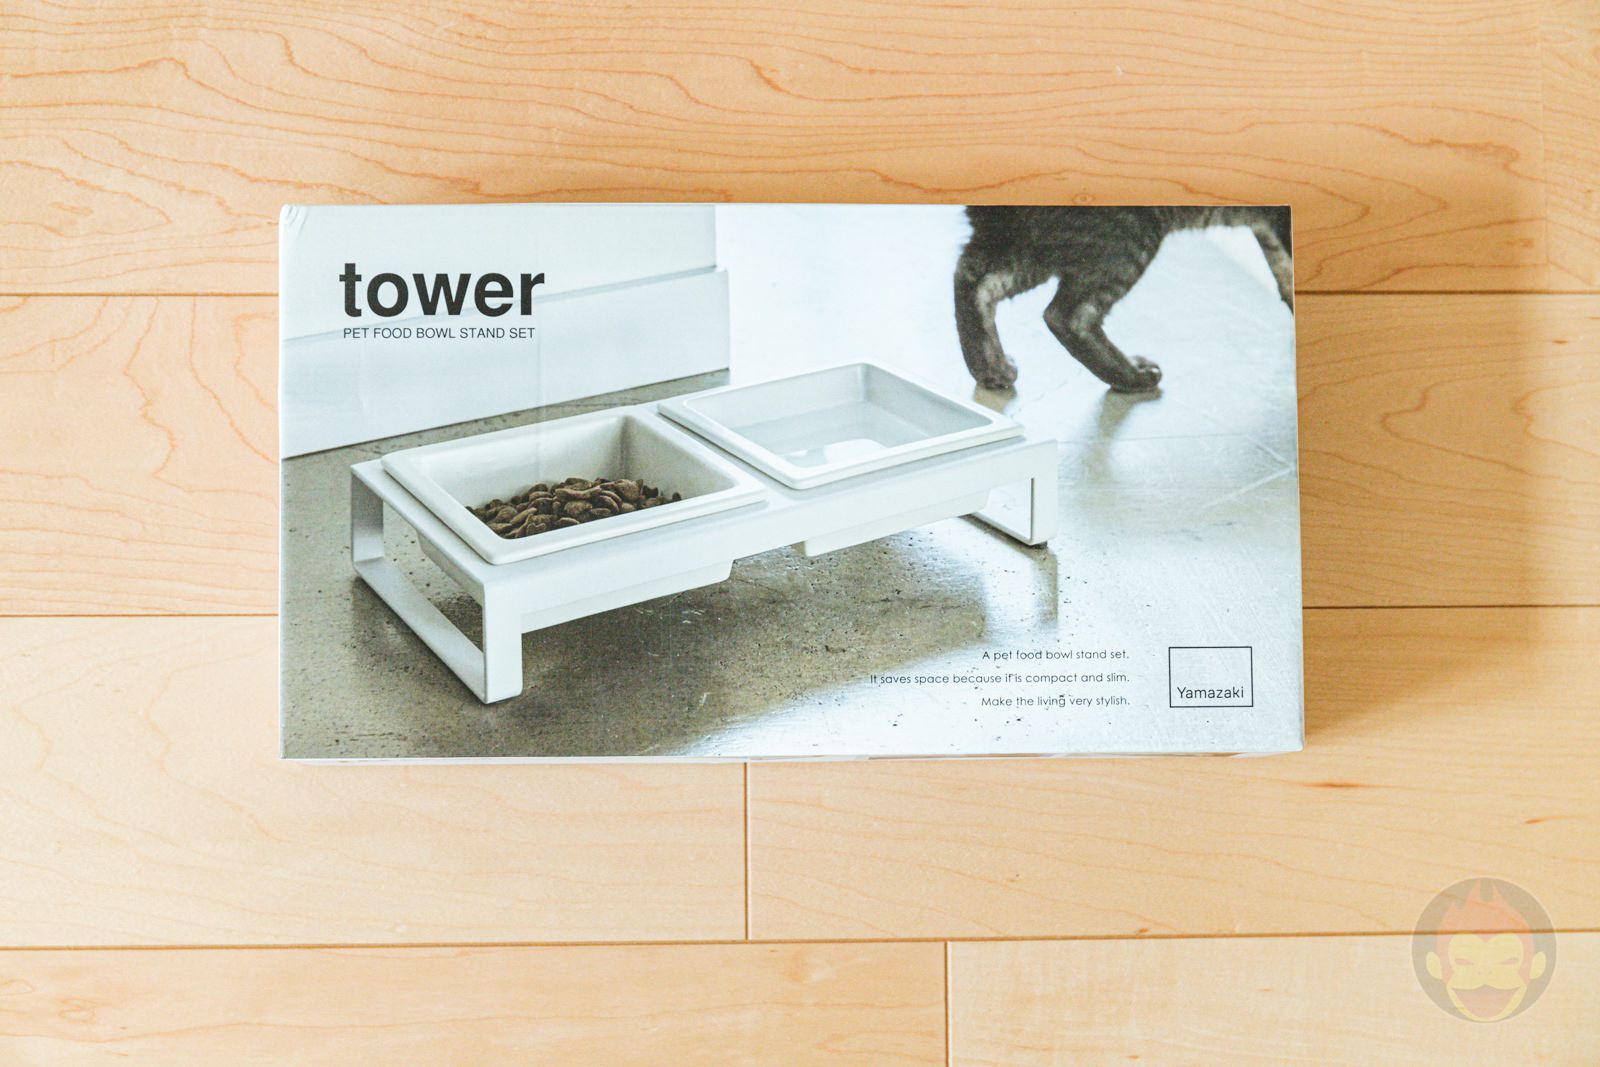 TOWER Pet food bowl stand set 01